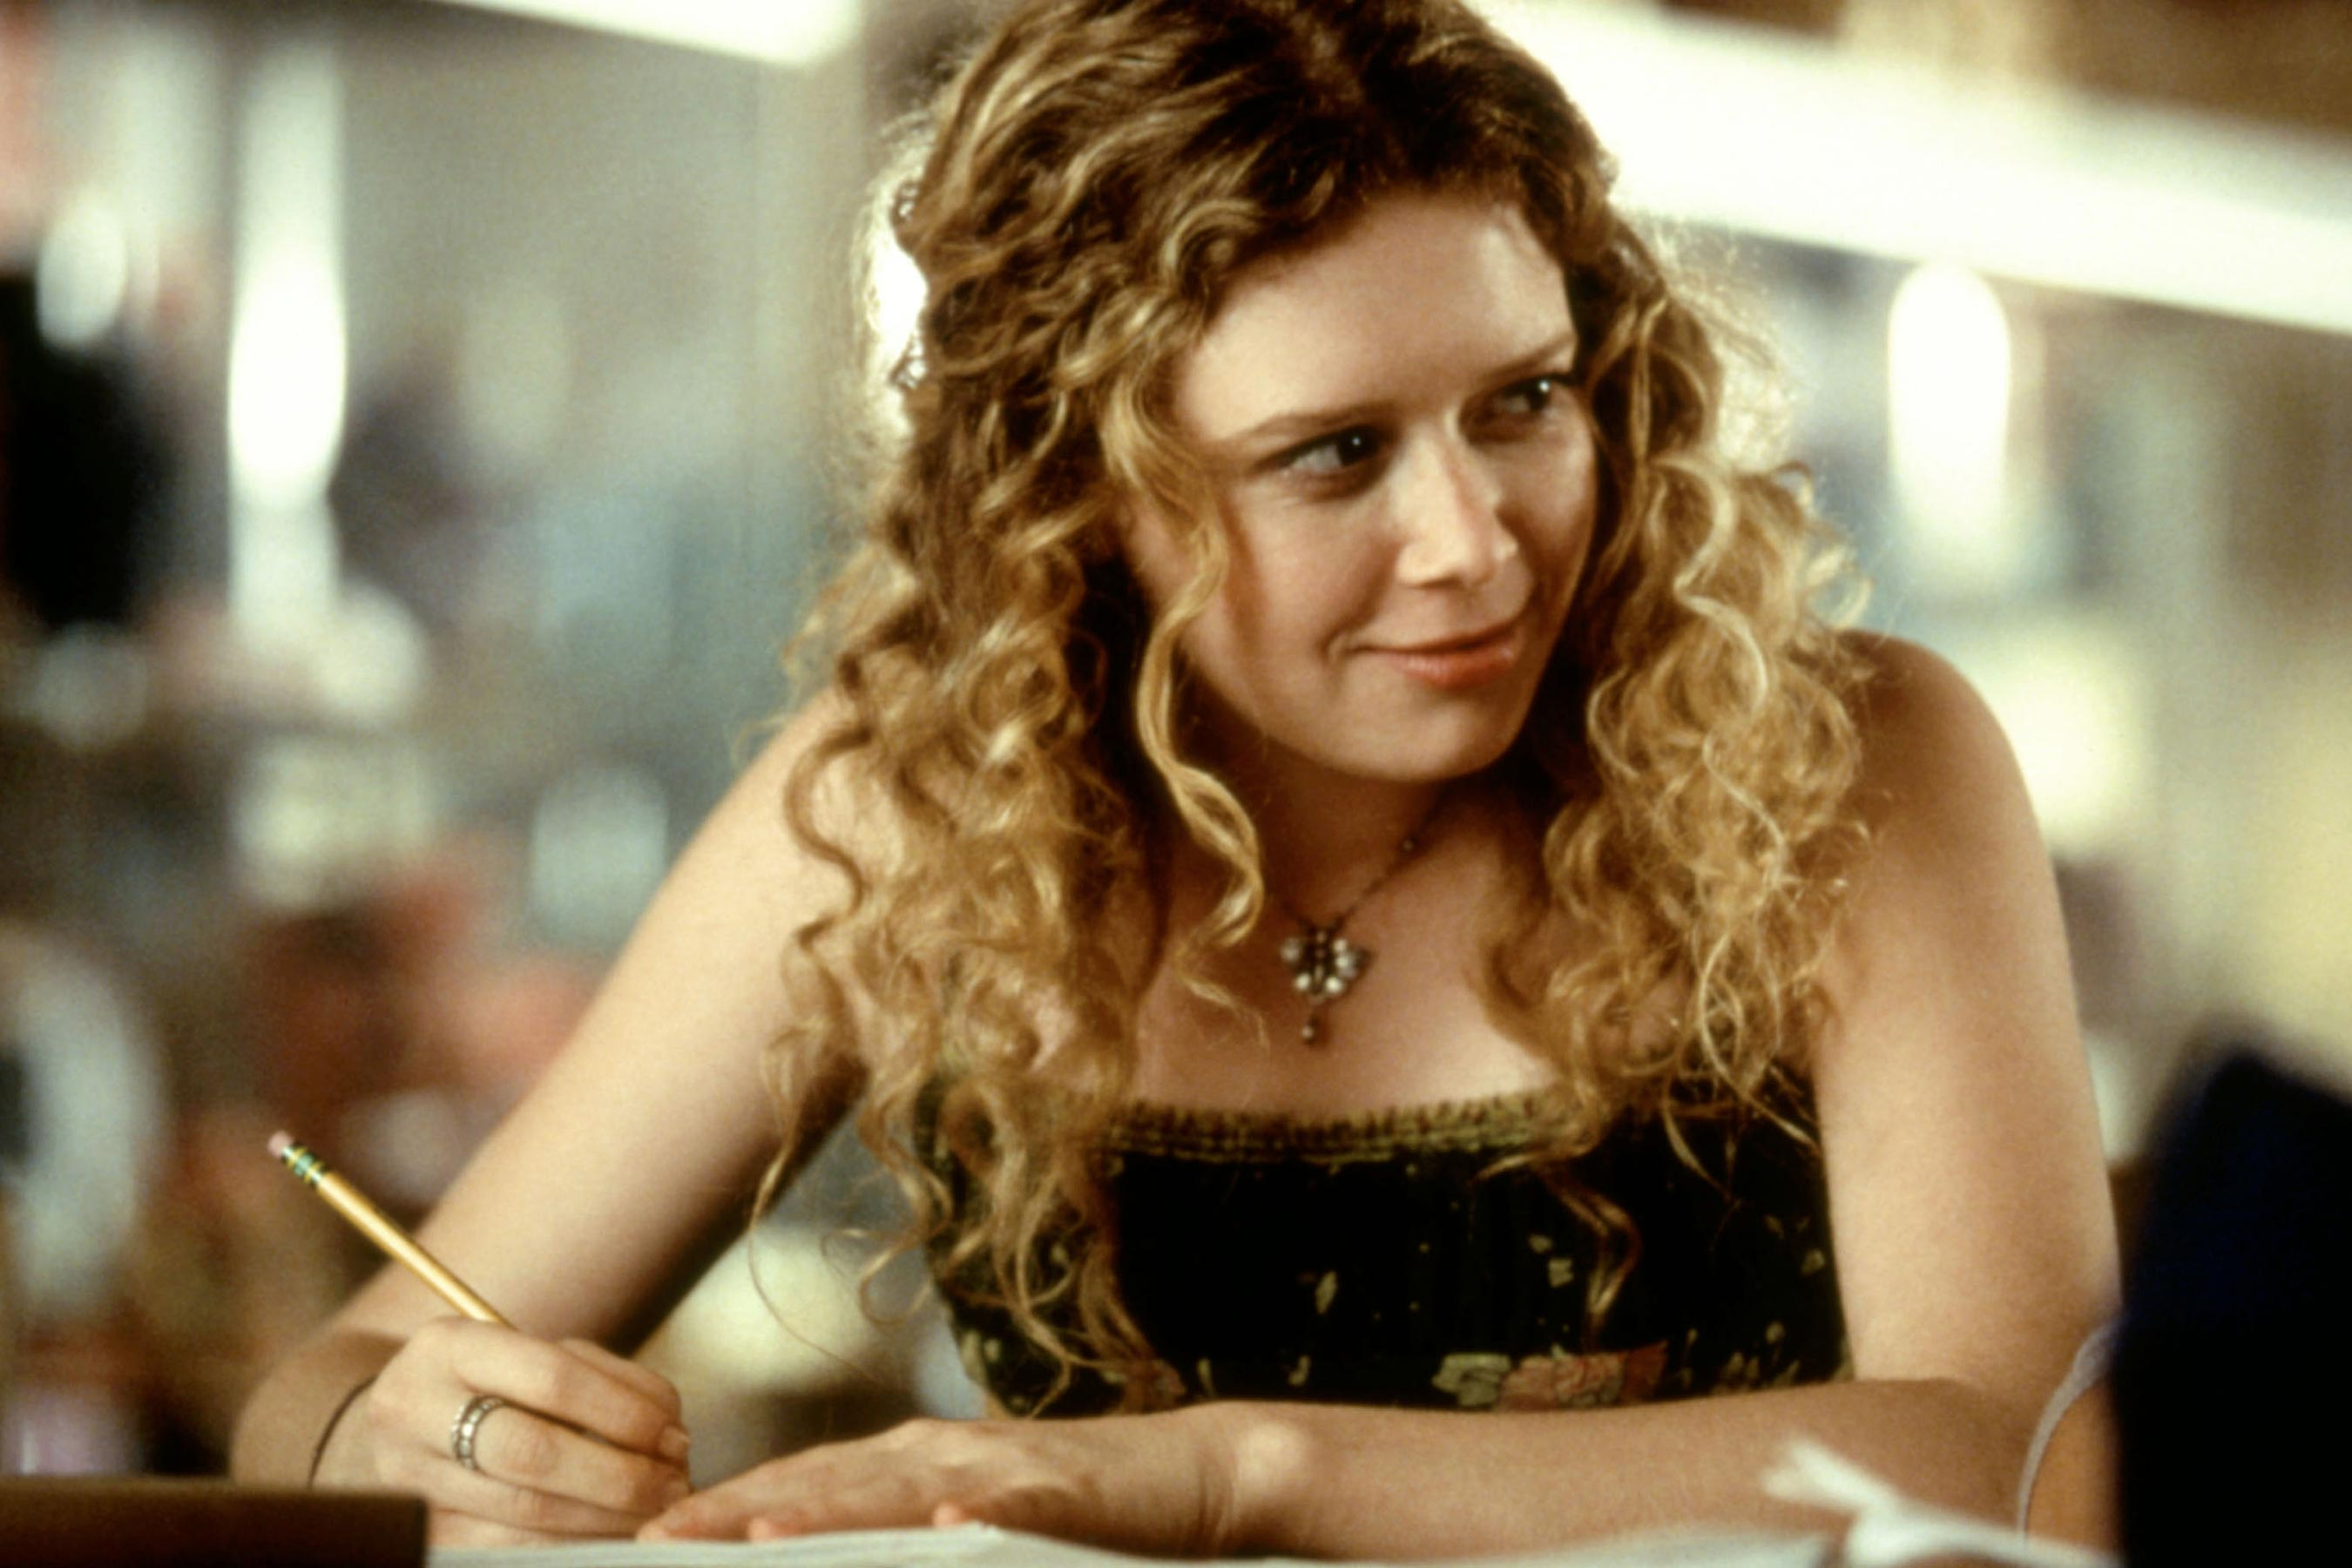 American Pie Actress Porn Video 20 years later, 'american pie' characters leave a bitter